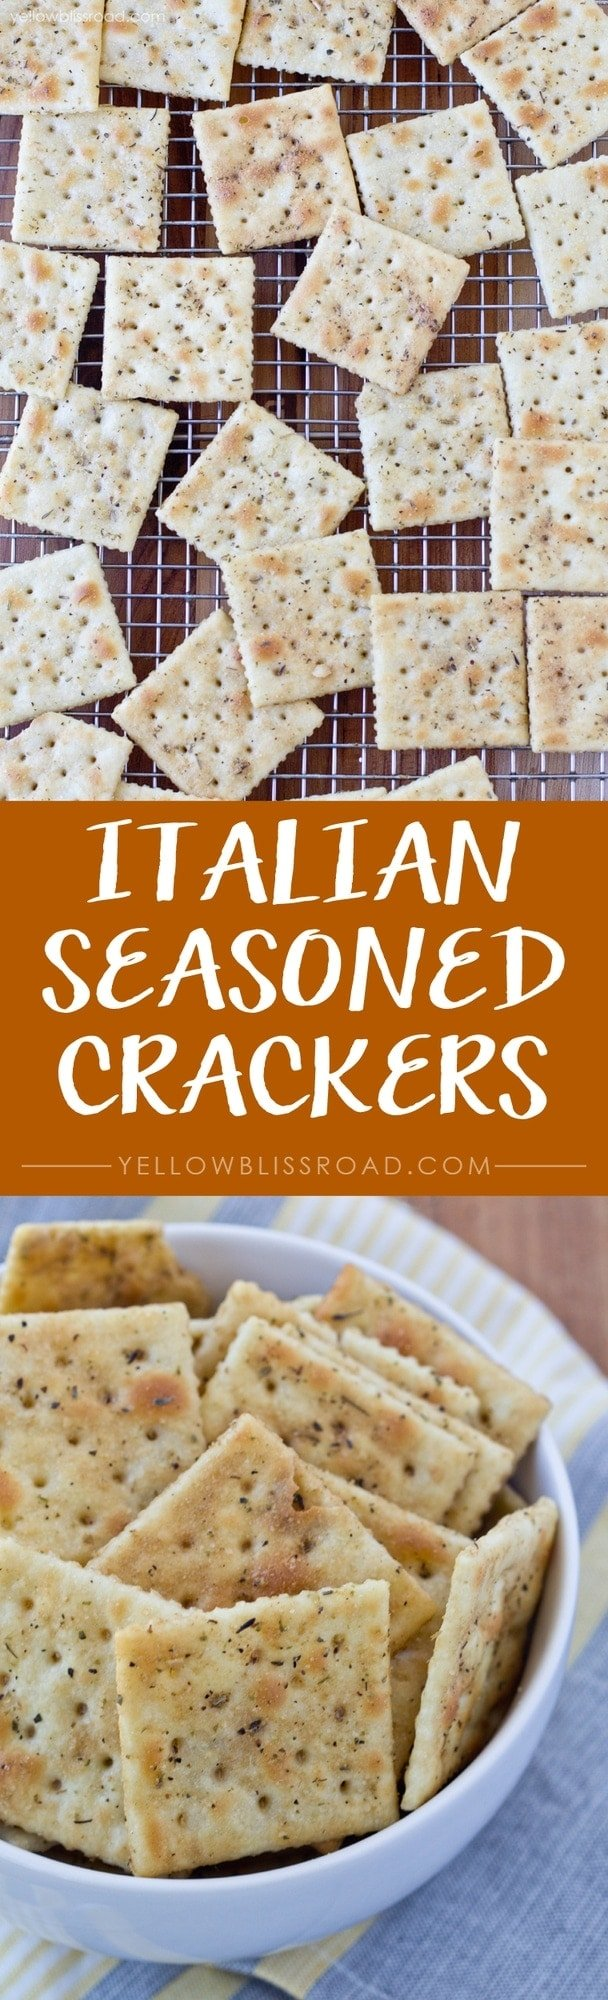 Italian Seasoned Crackers - Easy to make and easy to customize!